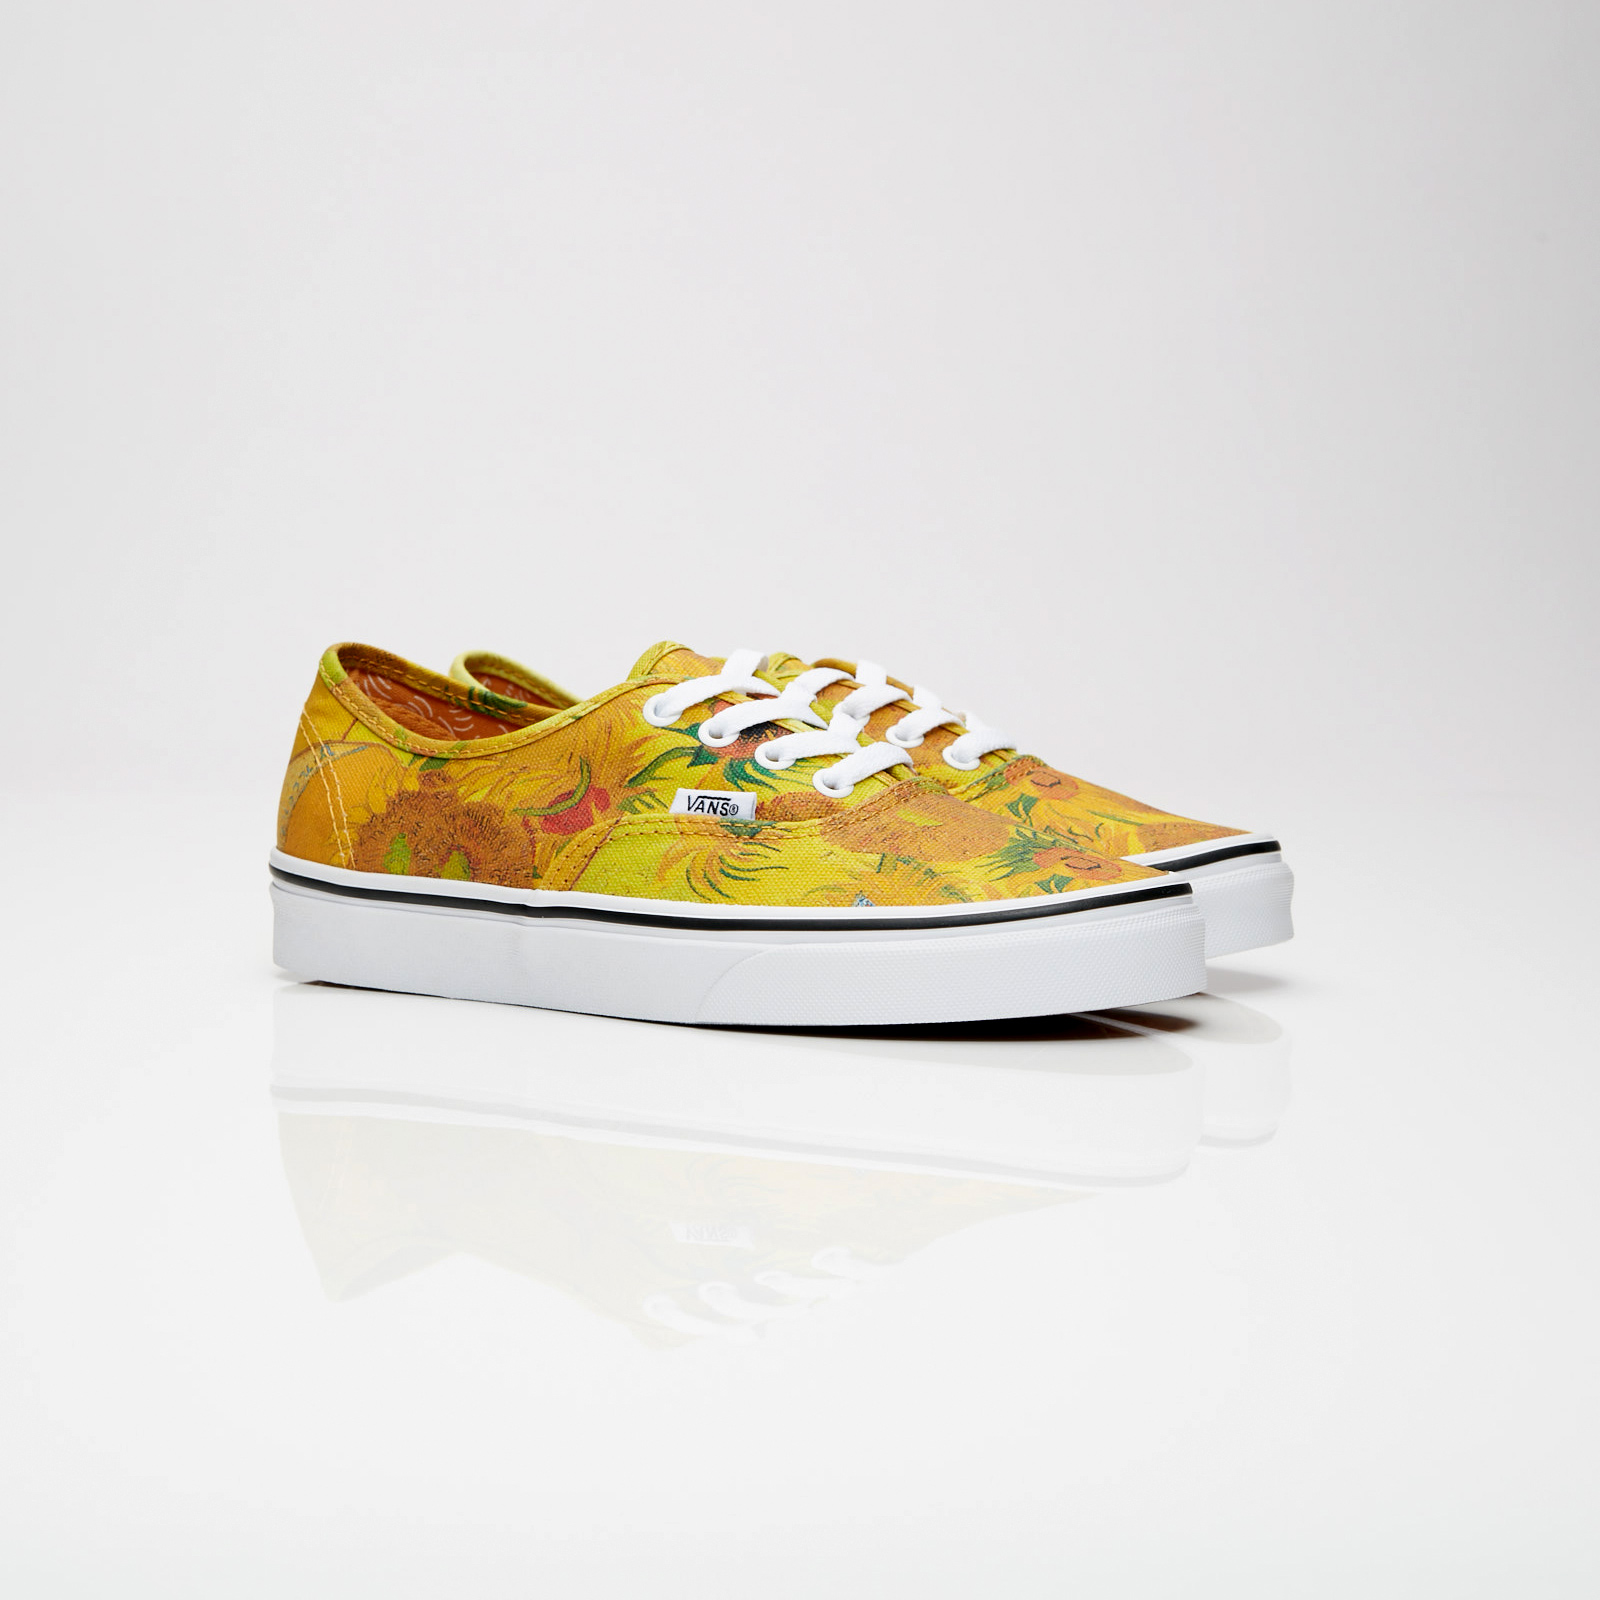 0c3be2ef611ddd Vans Vincent Van Gogh Authentic - Va38emu3w - Sneakersnstuff ...